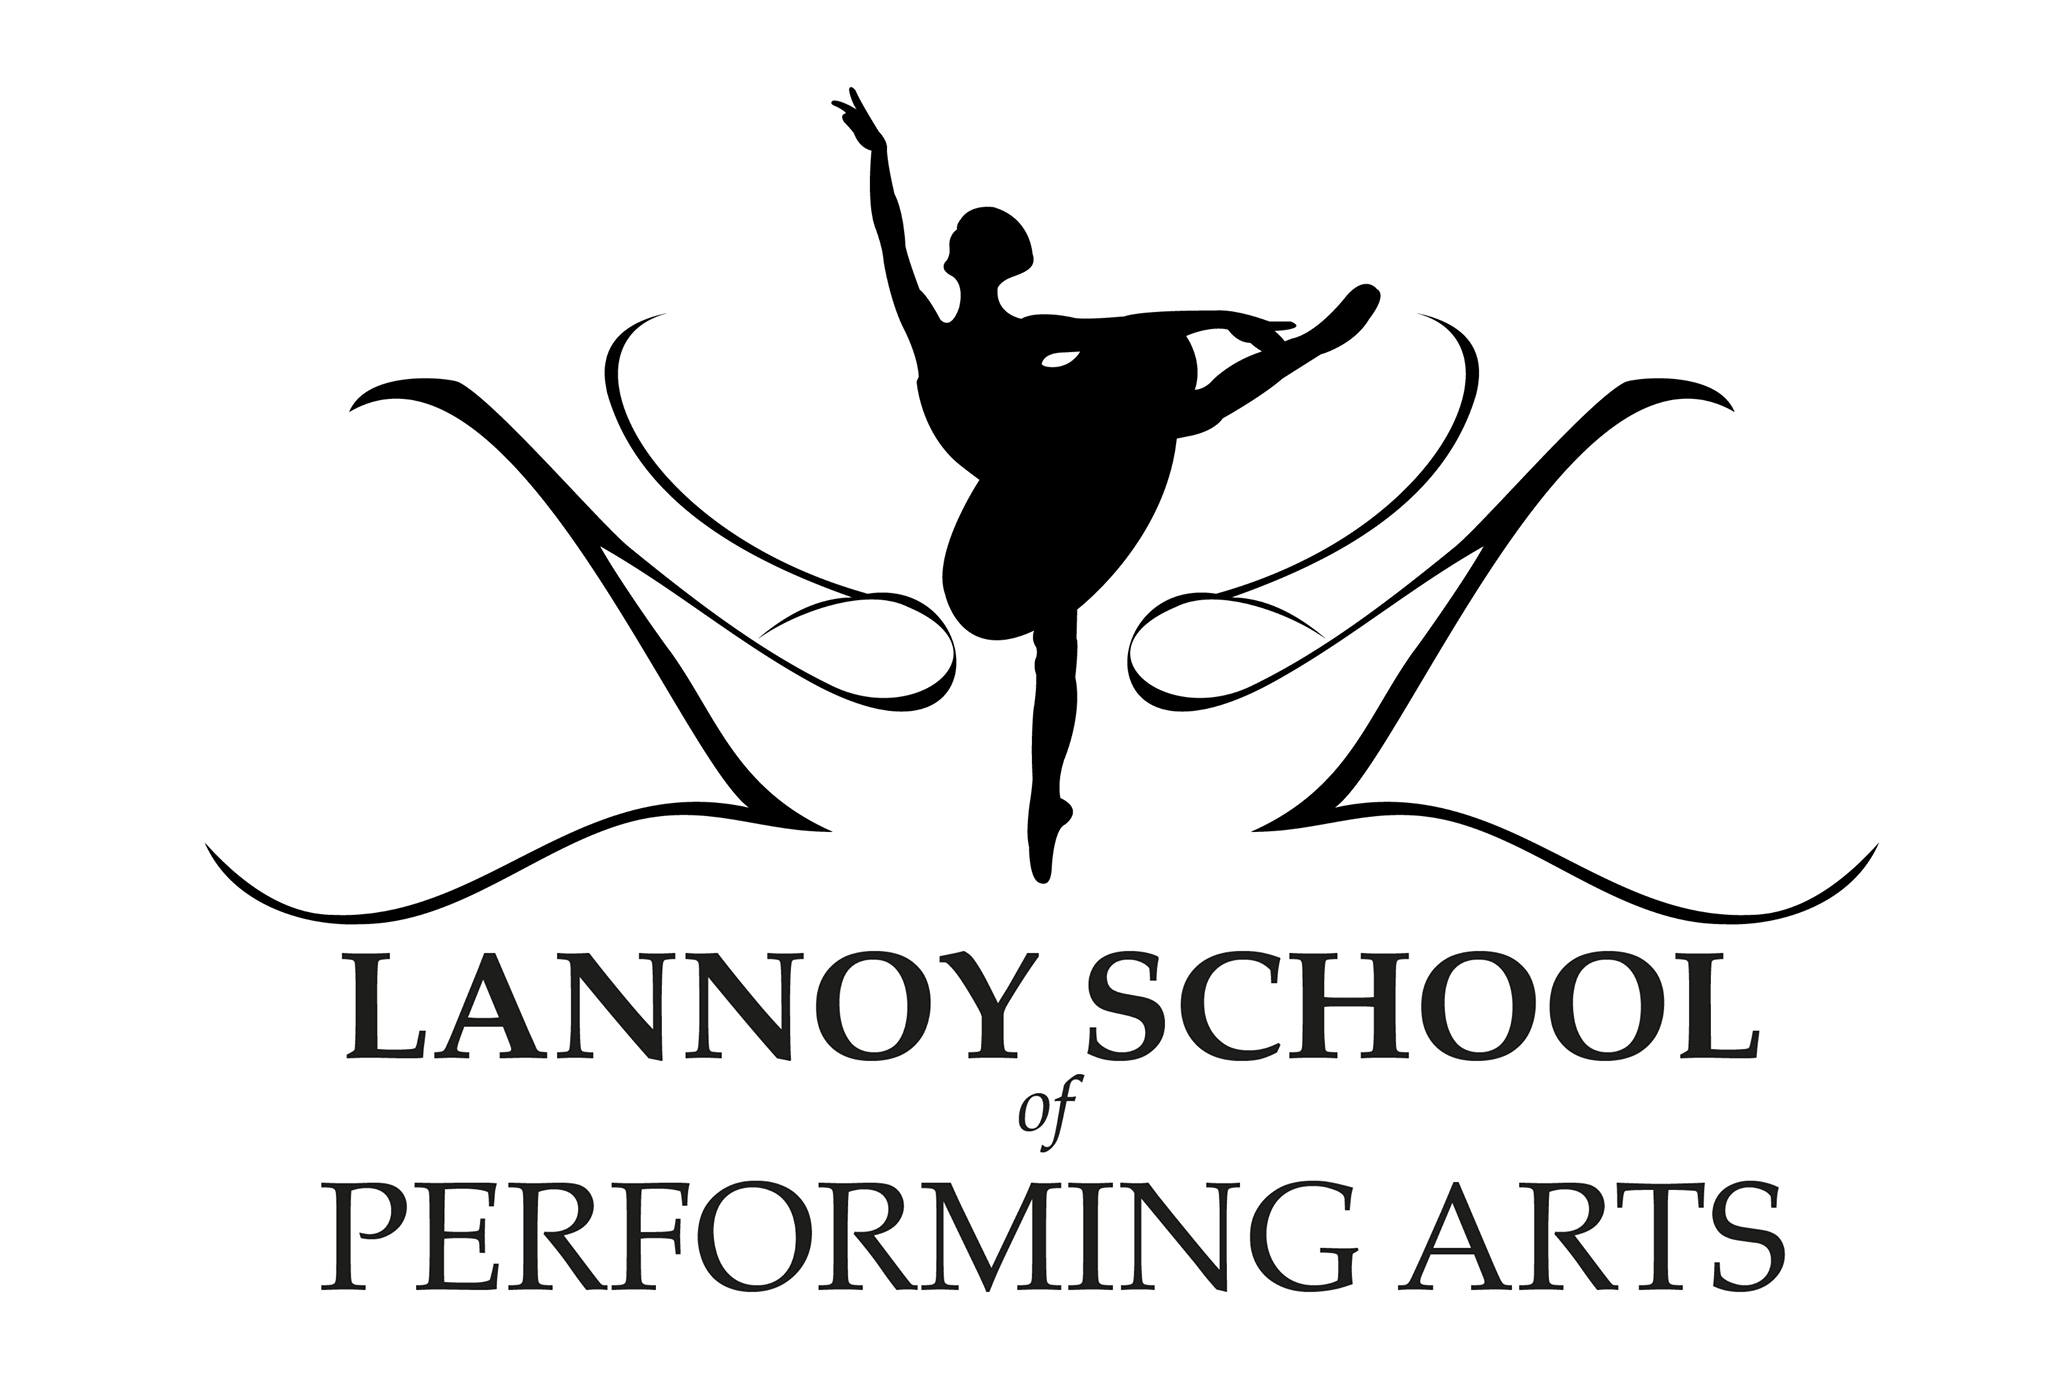 Lannoy School of Performing Arts